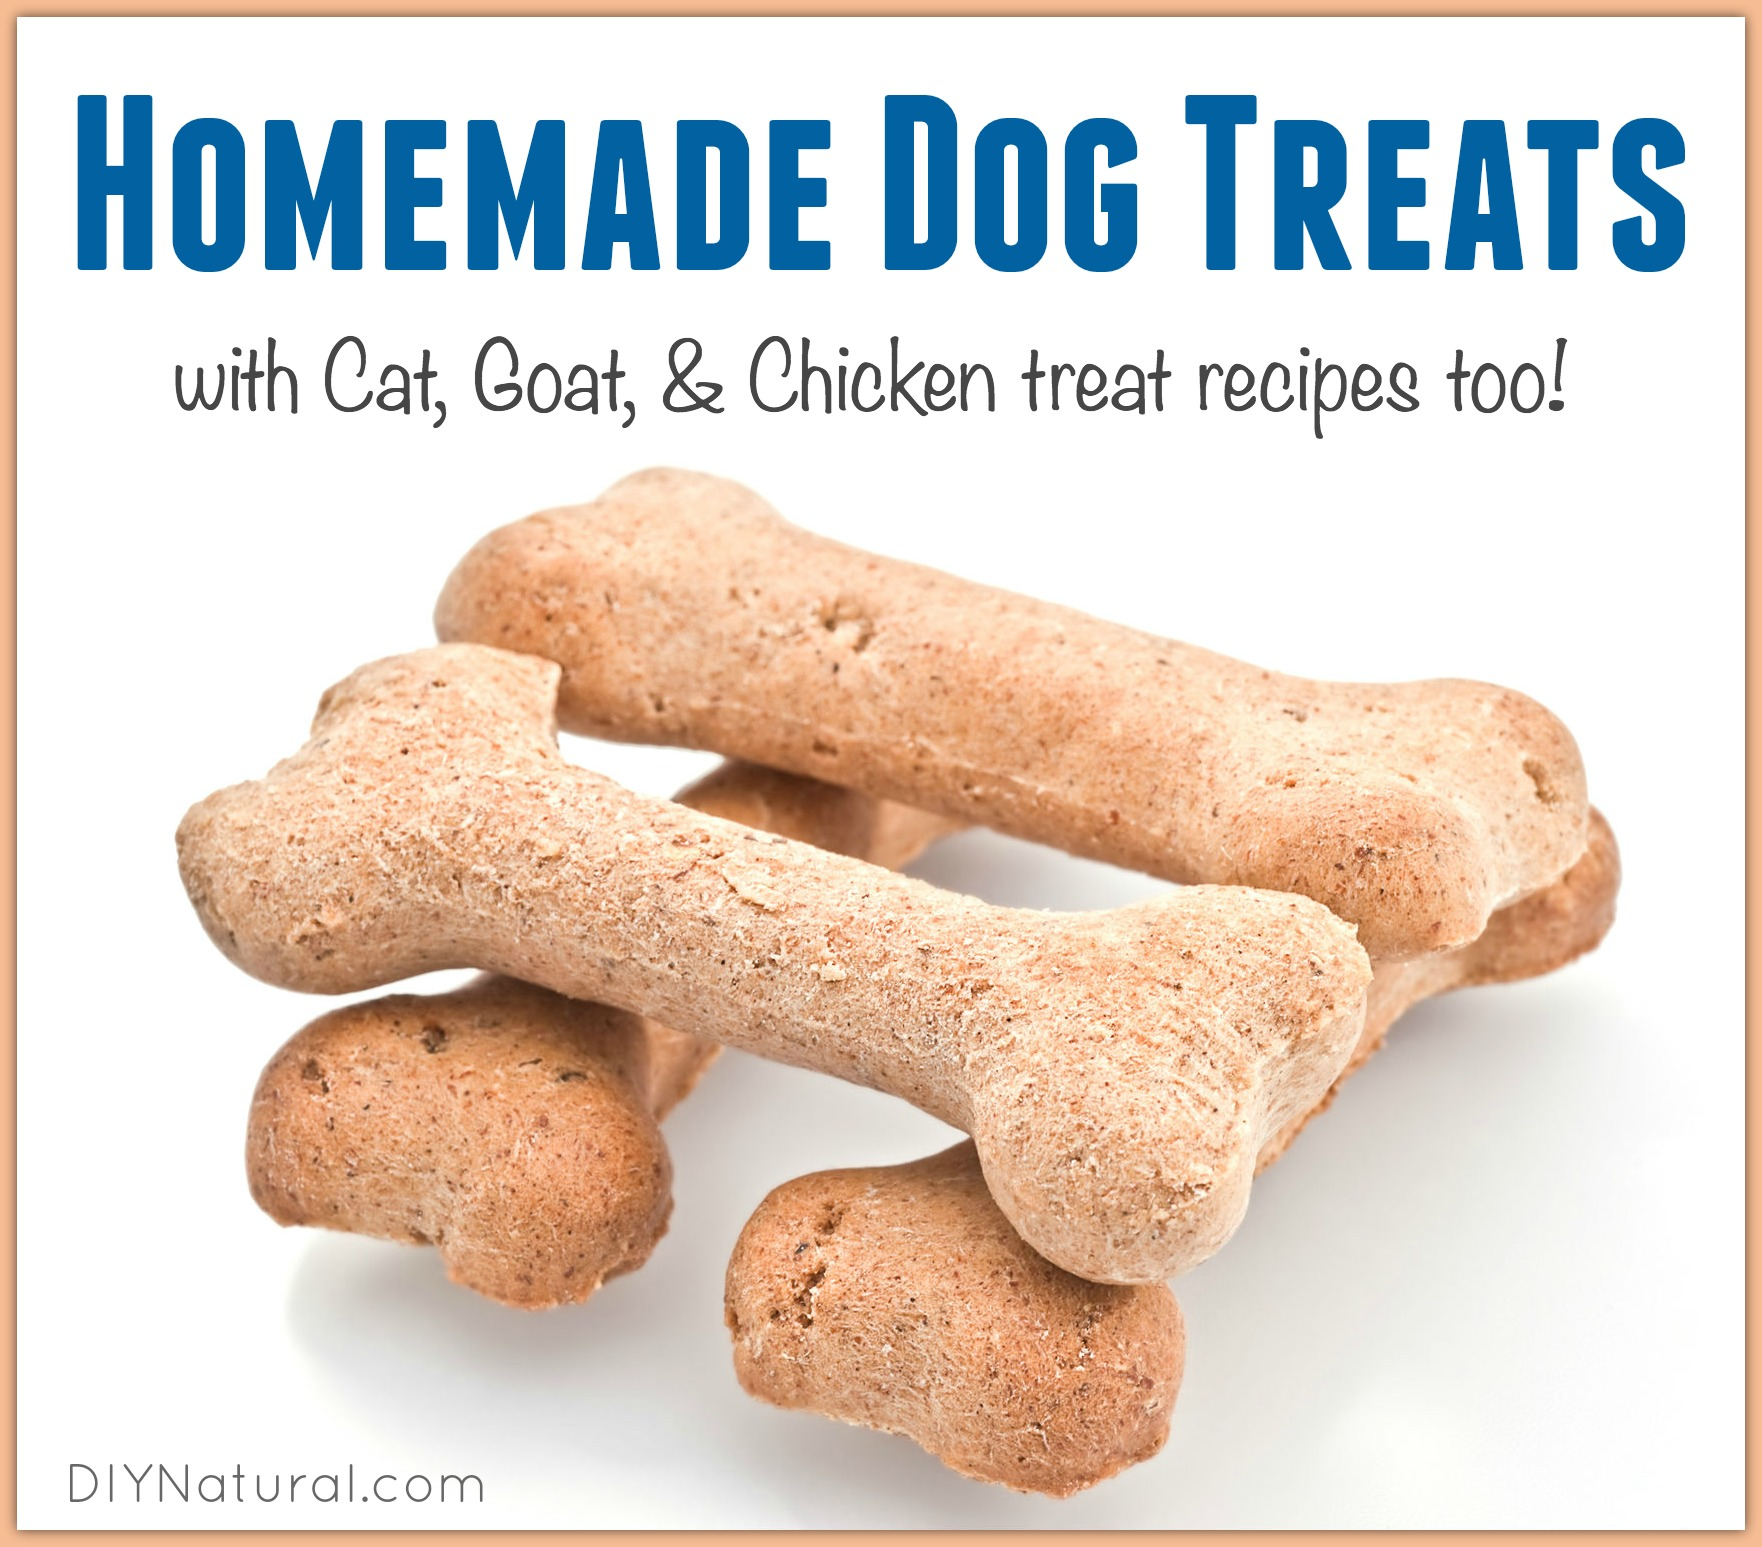 All Natural Dog Treat Recipes